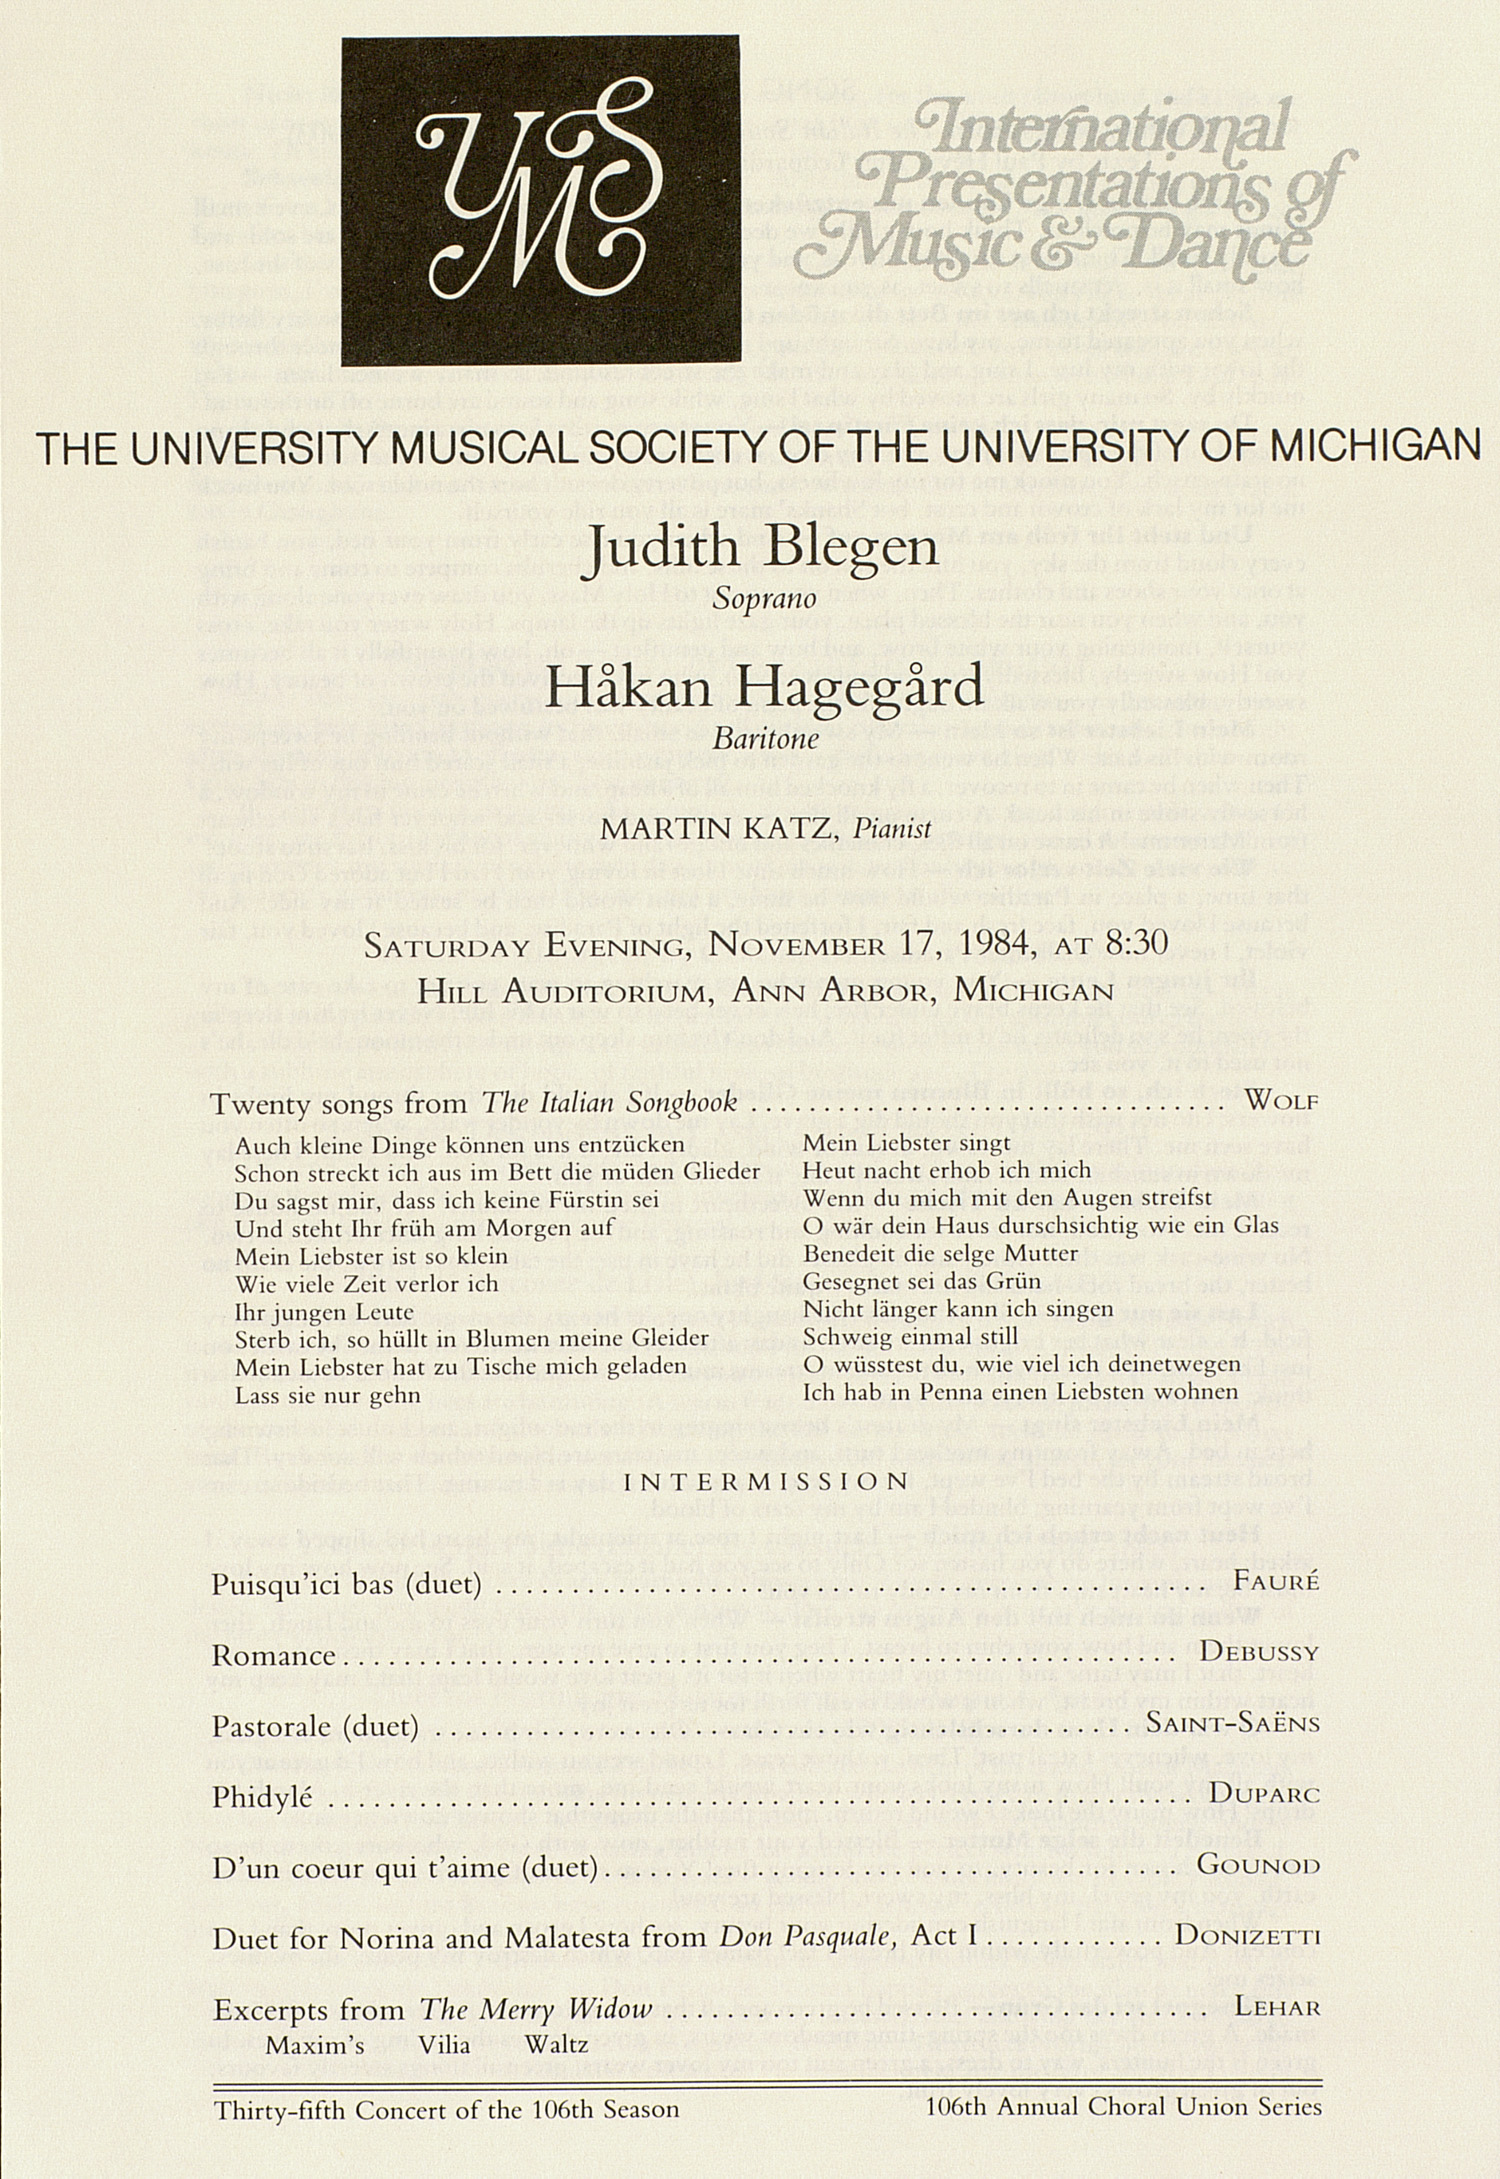 UMS Concert Program, November 17, 1984: International Presentations Of Music & Dance --  image